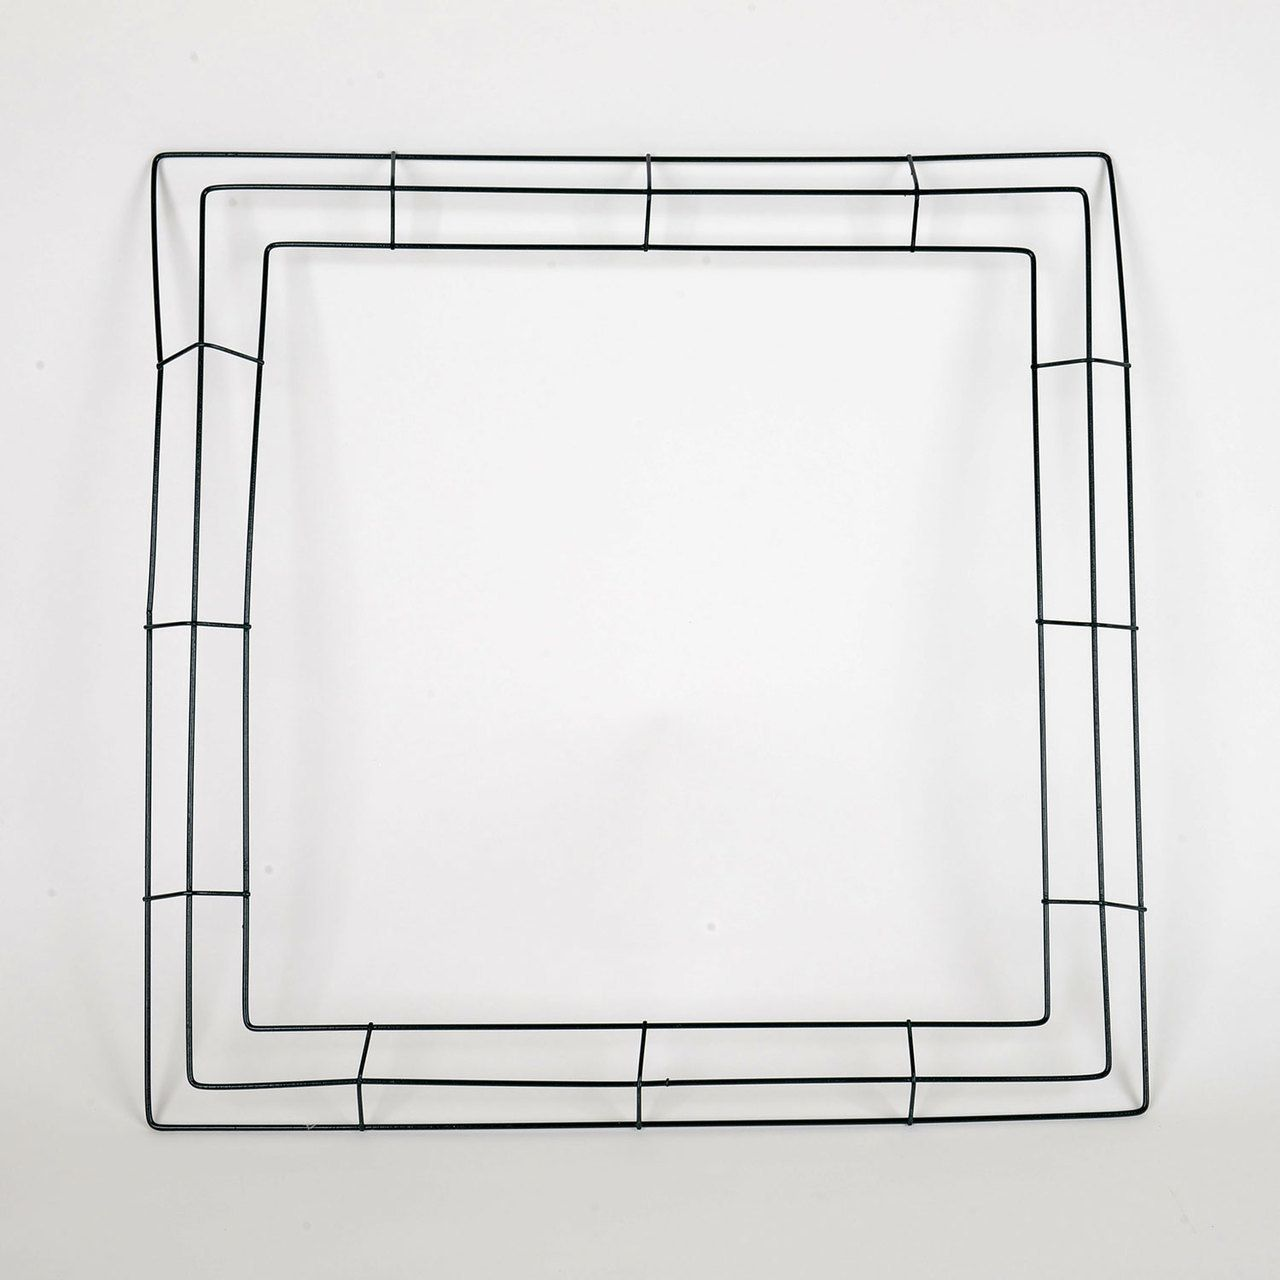 20 Inch Square Wreath Wire Frames Bundle Of 10pcs Wire Wreath Frame Square Wreath Frame Wreath